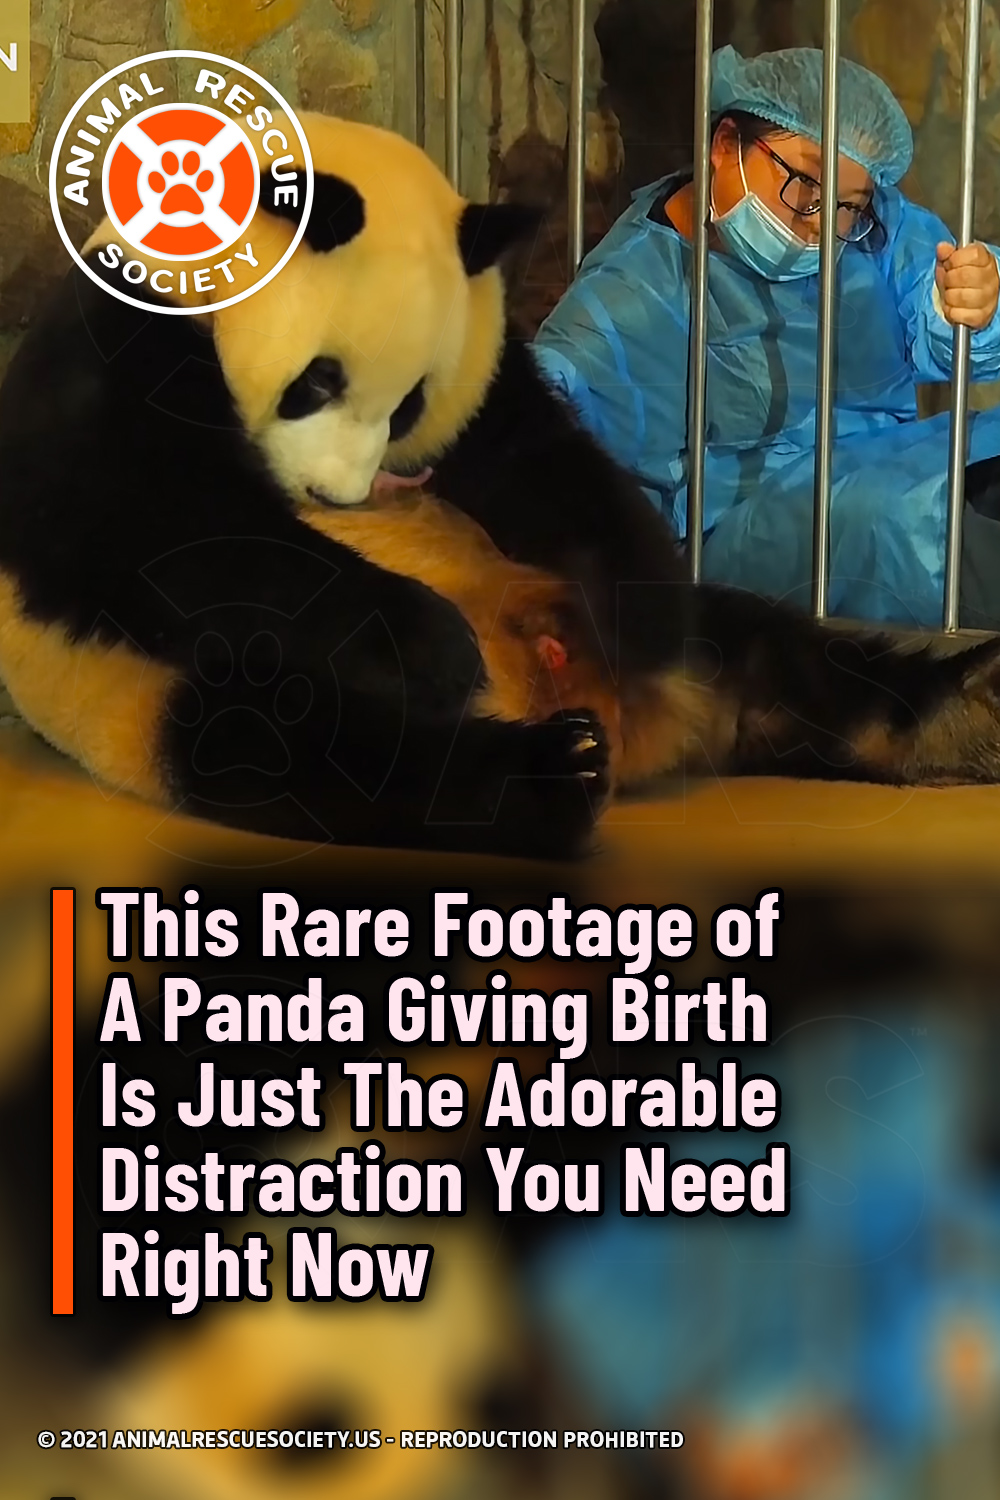 This Rare Footage of A Panda Giving Birth Is Just The Adorable Distraction You Need Right Now